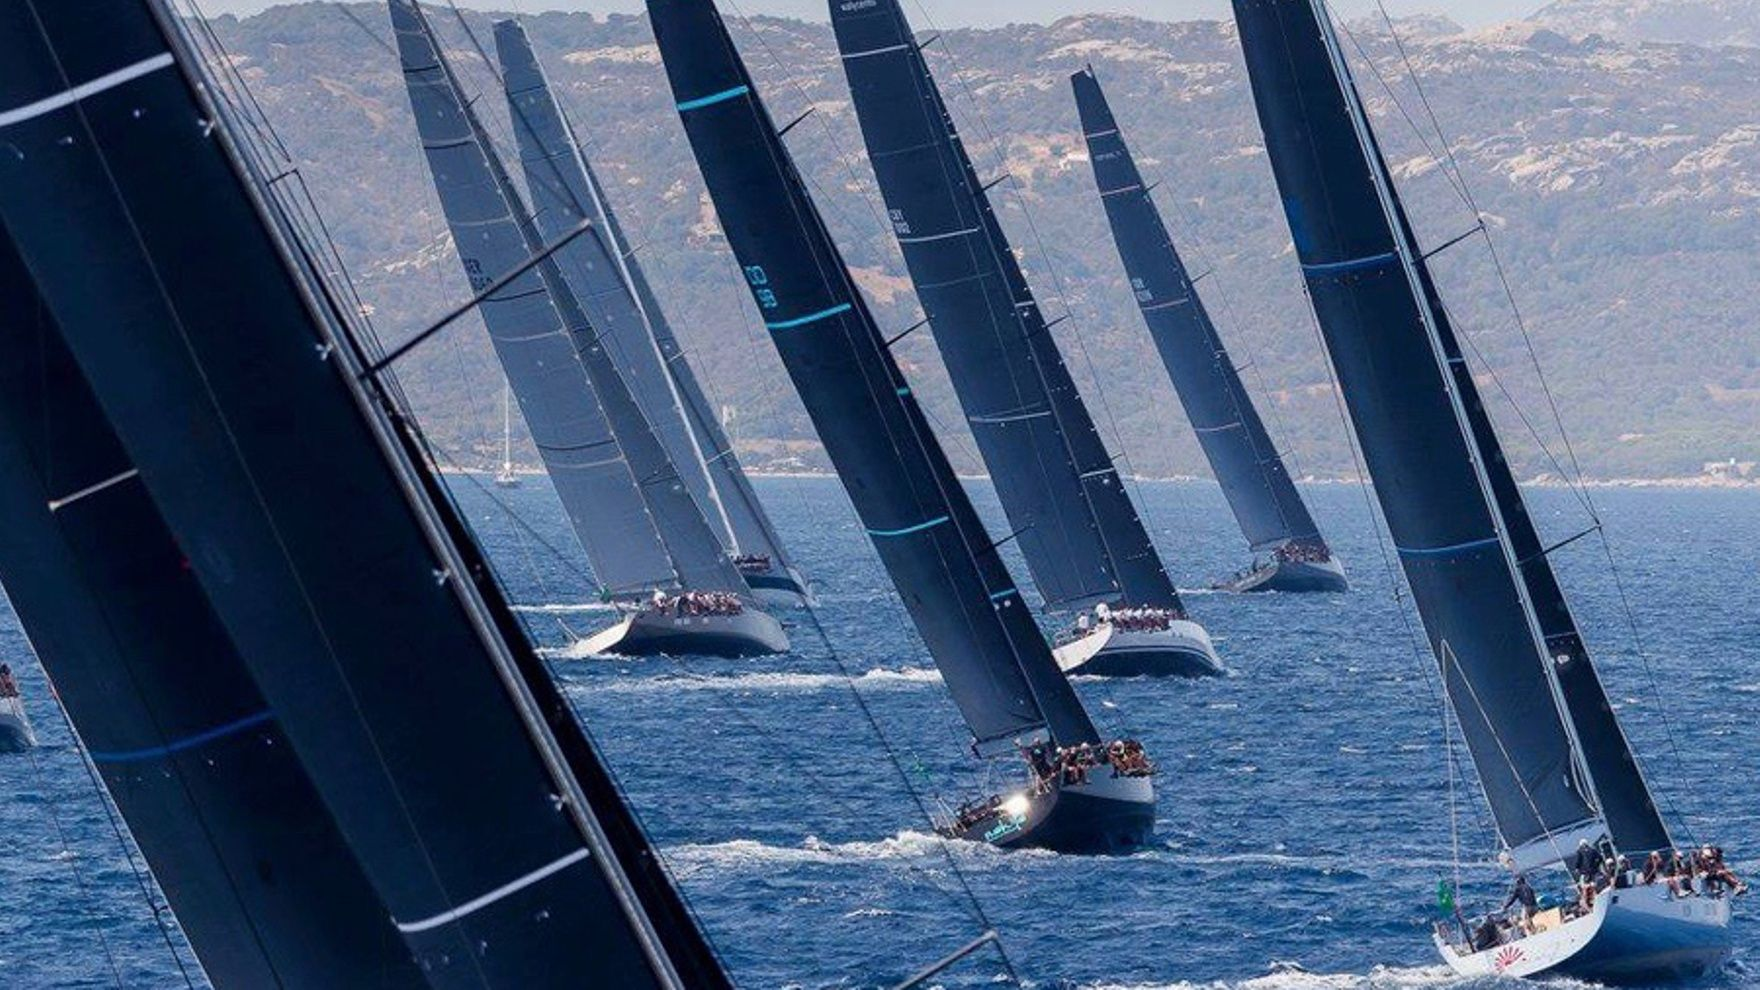 Maxi Yacht Rolex Cup 2020